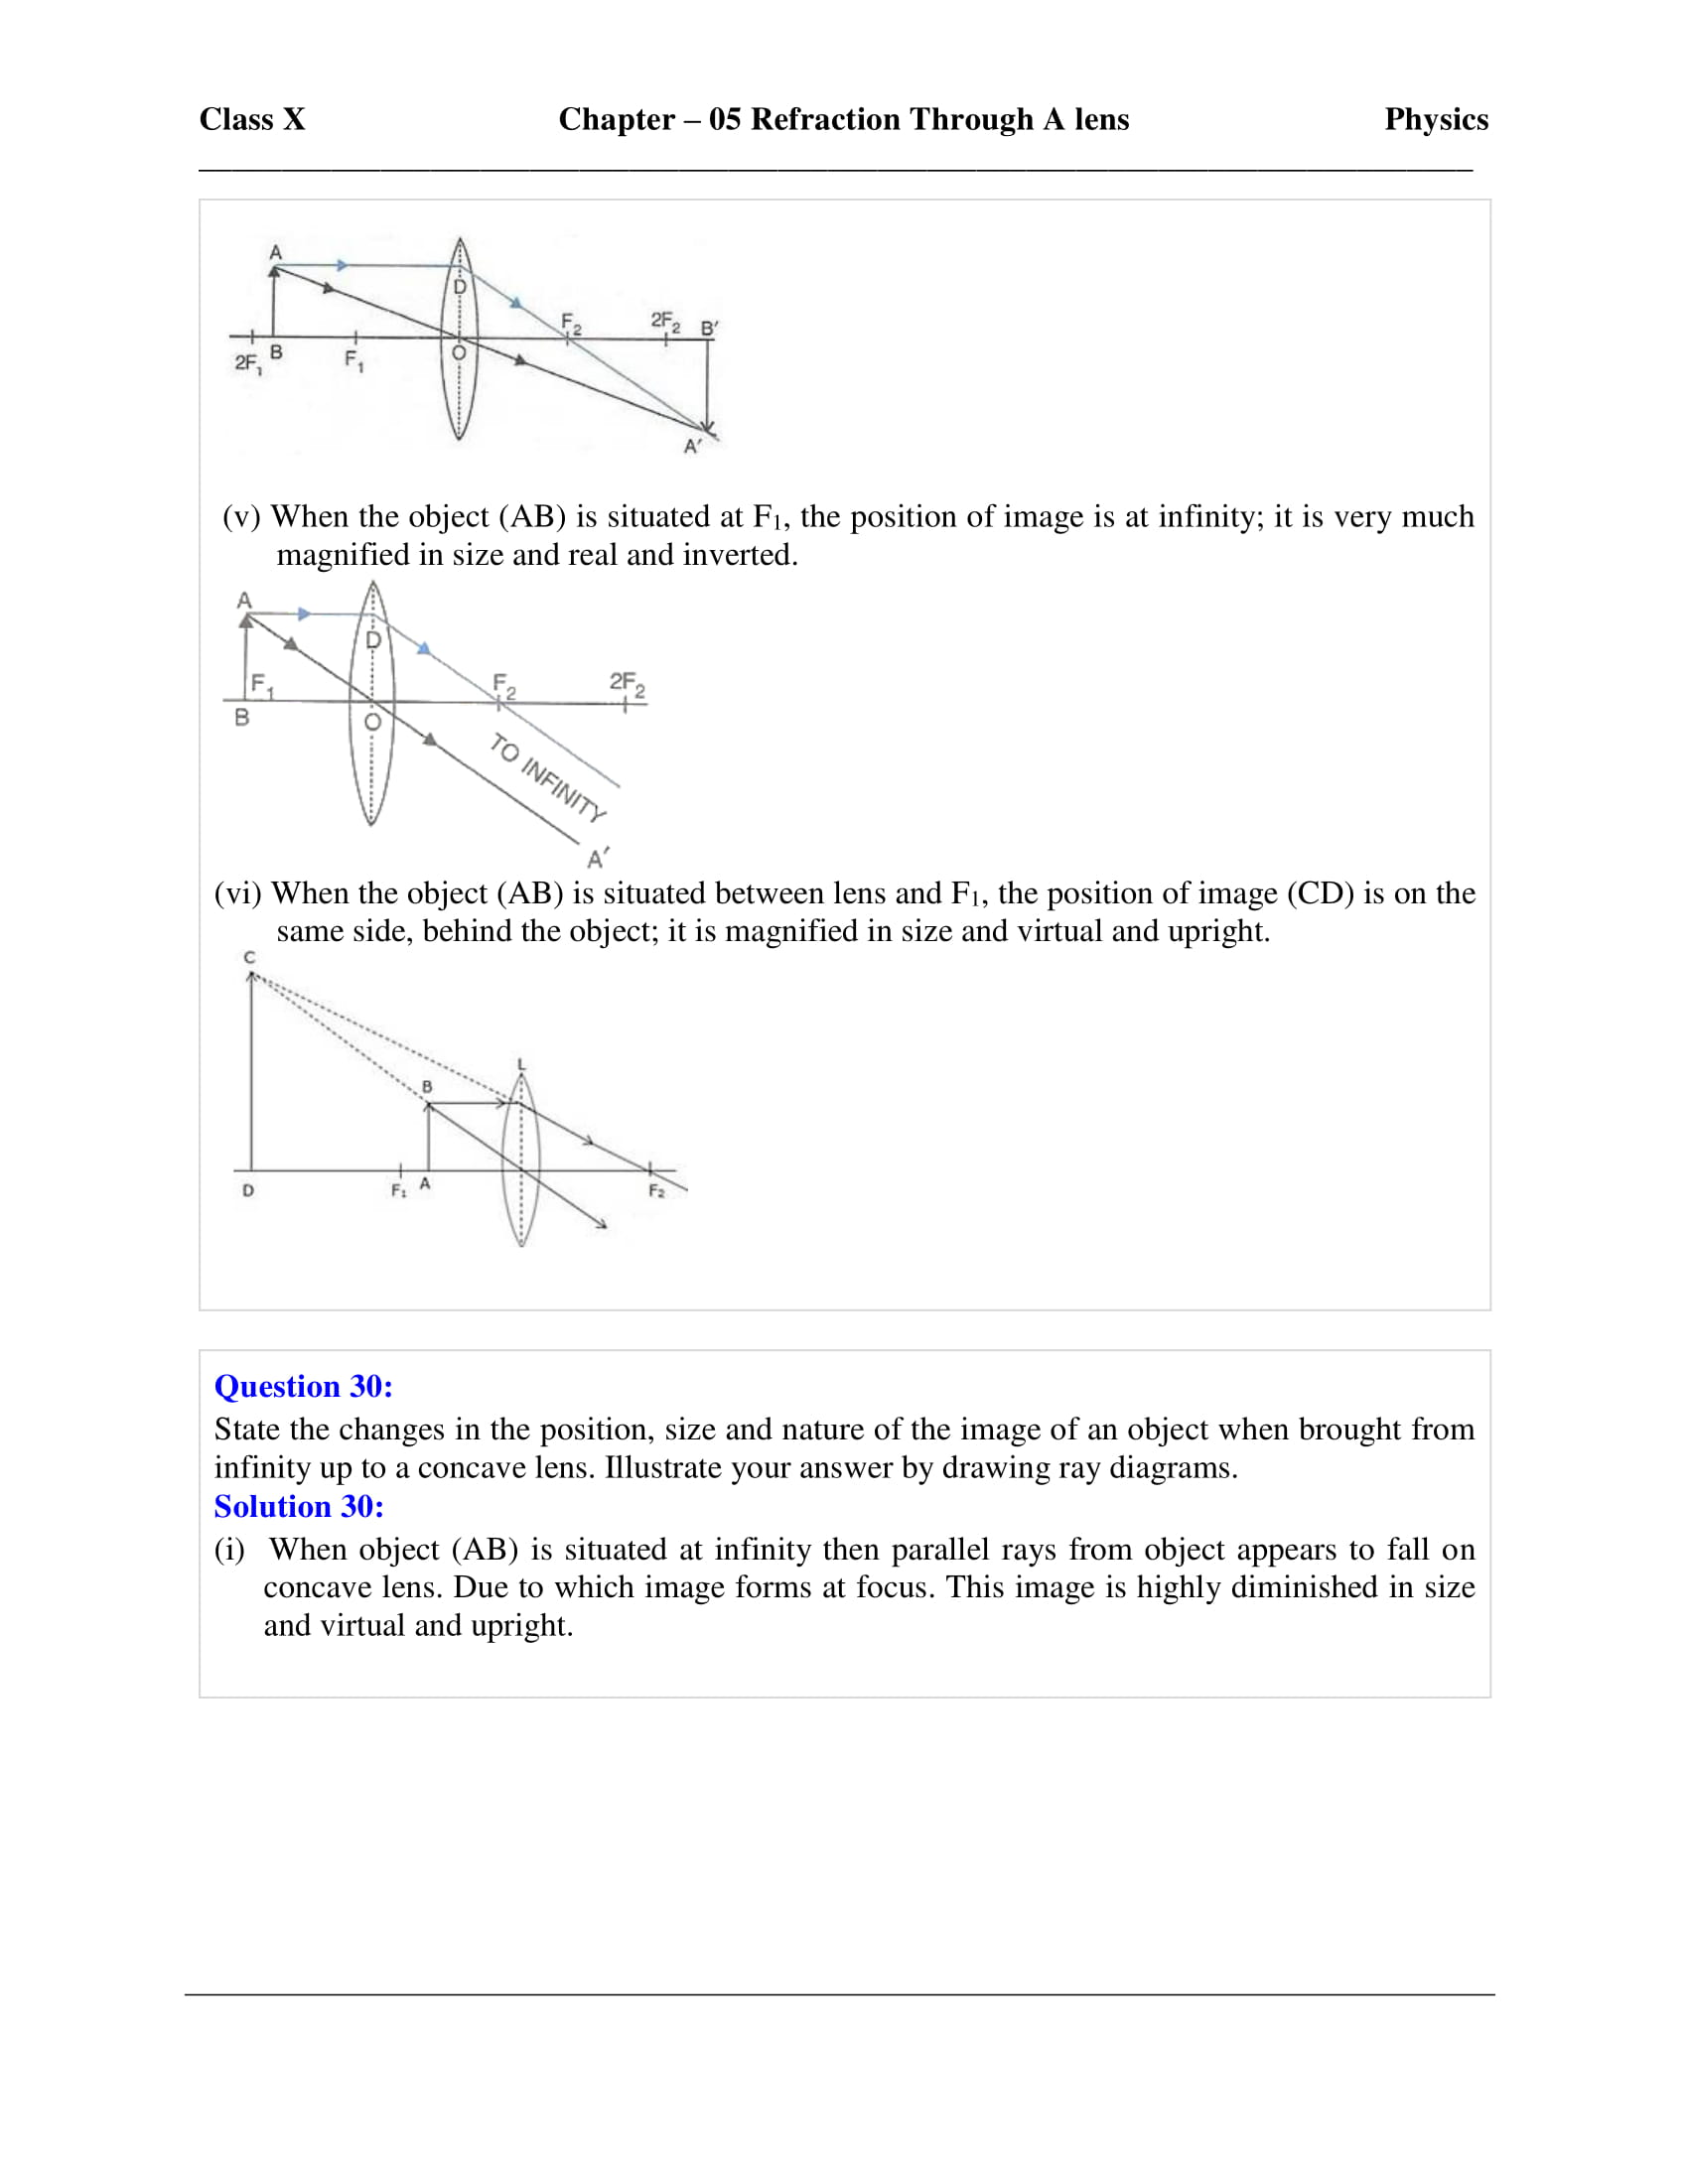 icse-selina-physics-solutions-class-10-chapter-5-refraction-through-a-lens-29